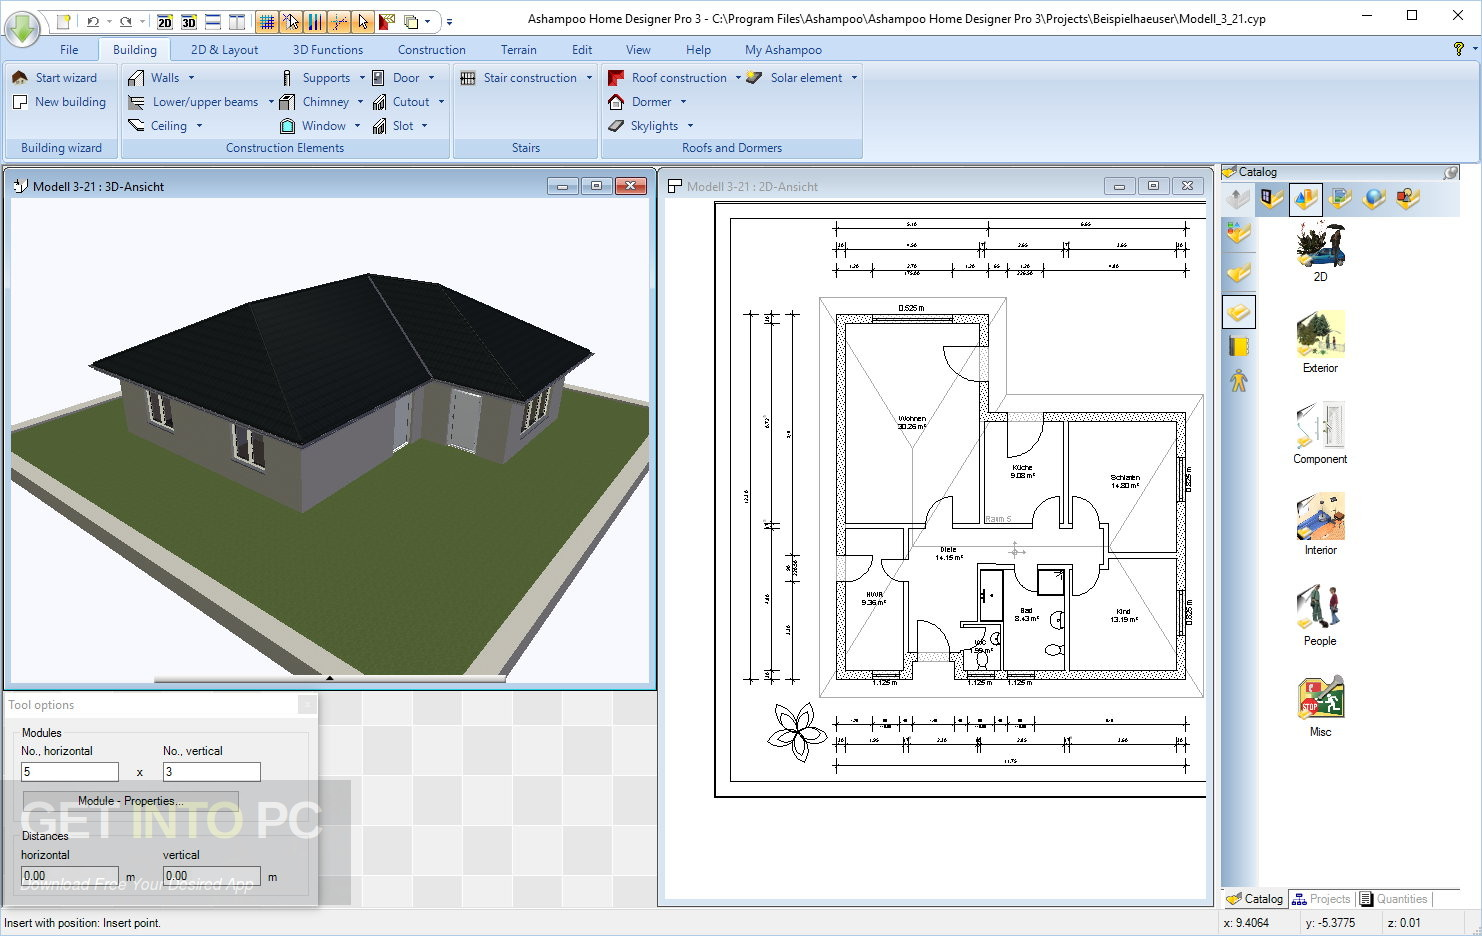 Ashampoo Home Designer Pro 4.1.0 Latest Version Download